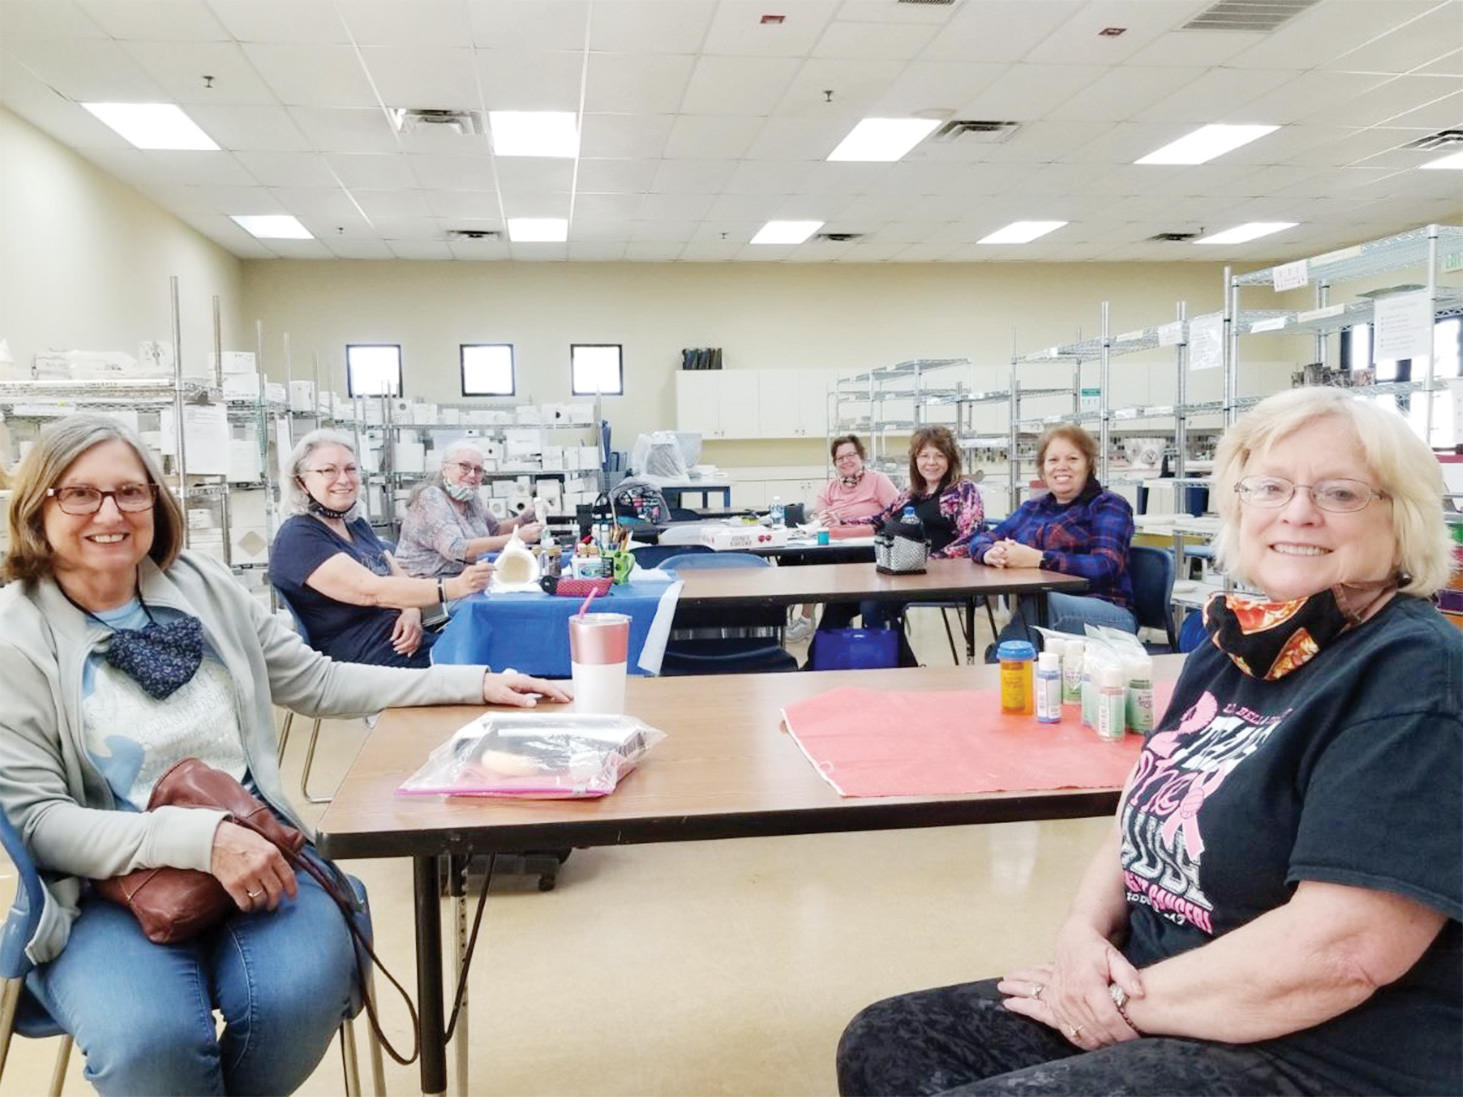 Three new members, Jill Stevens (front left), Linda Munz (front right) and Mary Ellen Steibel (back) with Cathy Hampton, Cindy Parker, Neva Kosmicki, and Maria Rudolph.